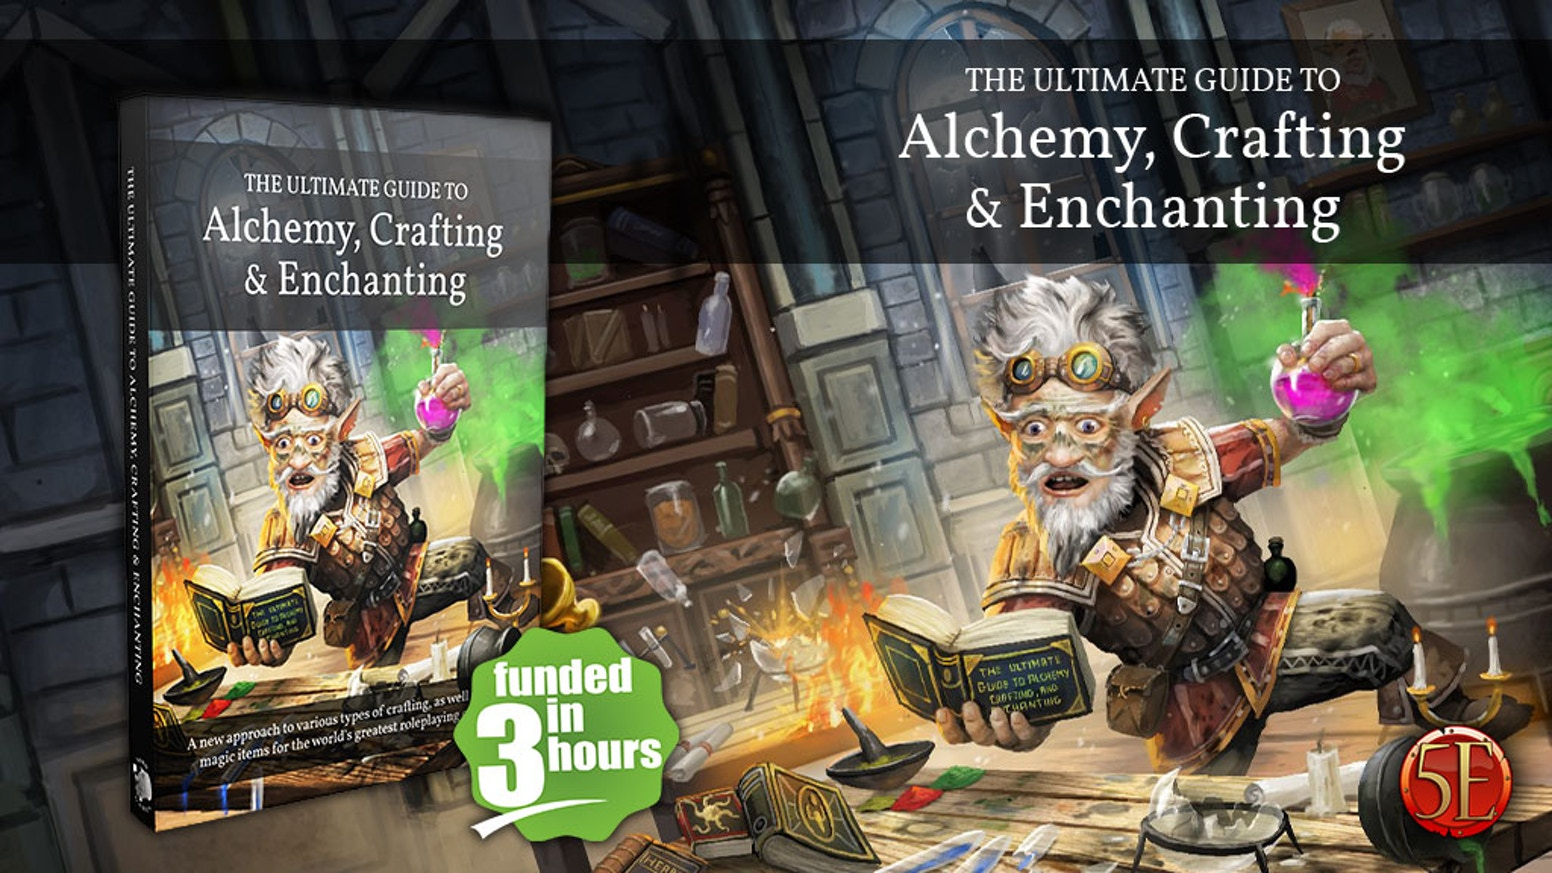 A brand new approach to crafting, and hundreds of new magic items, for the world's greatest roleplaying game!